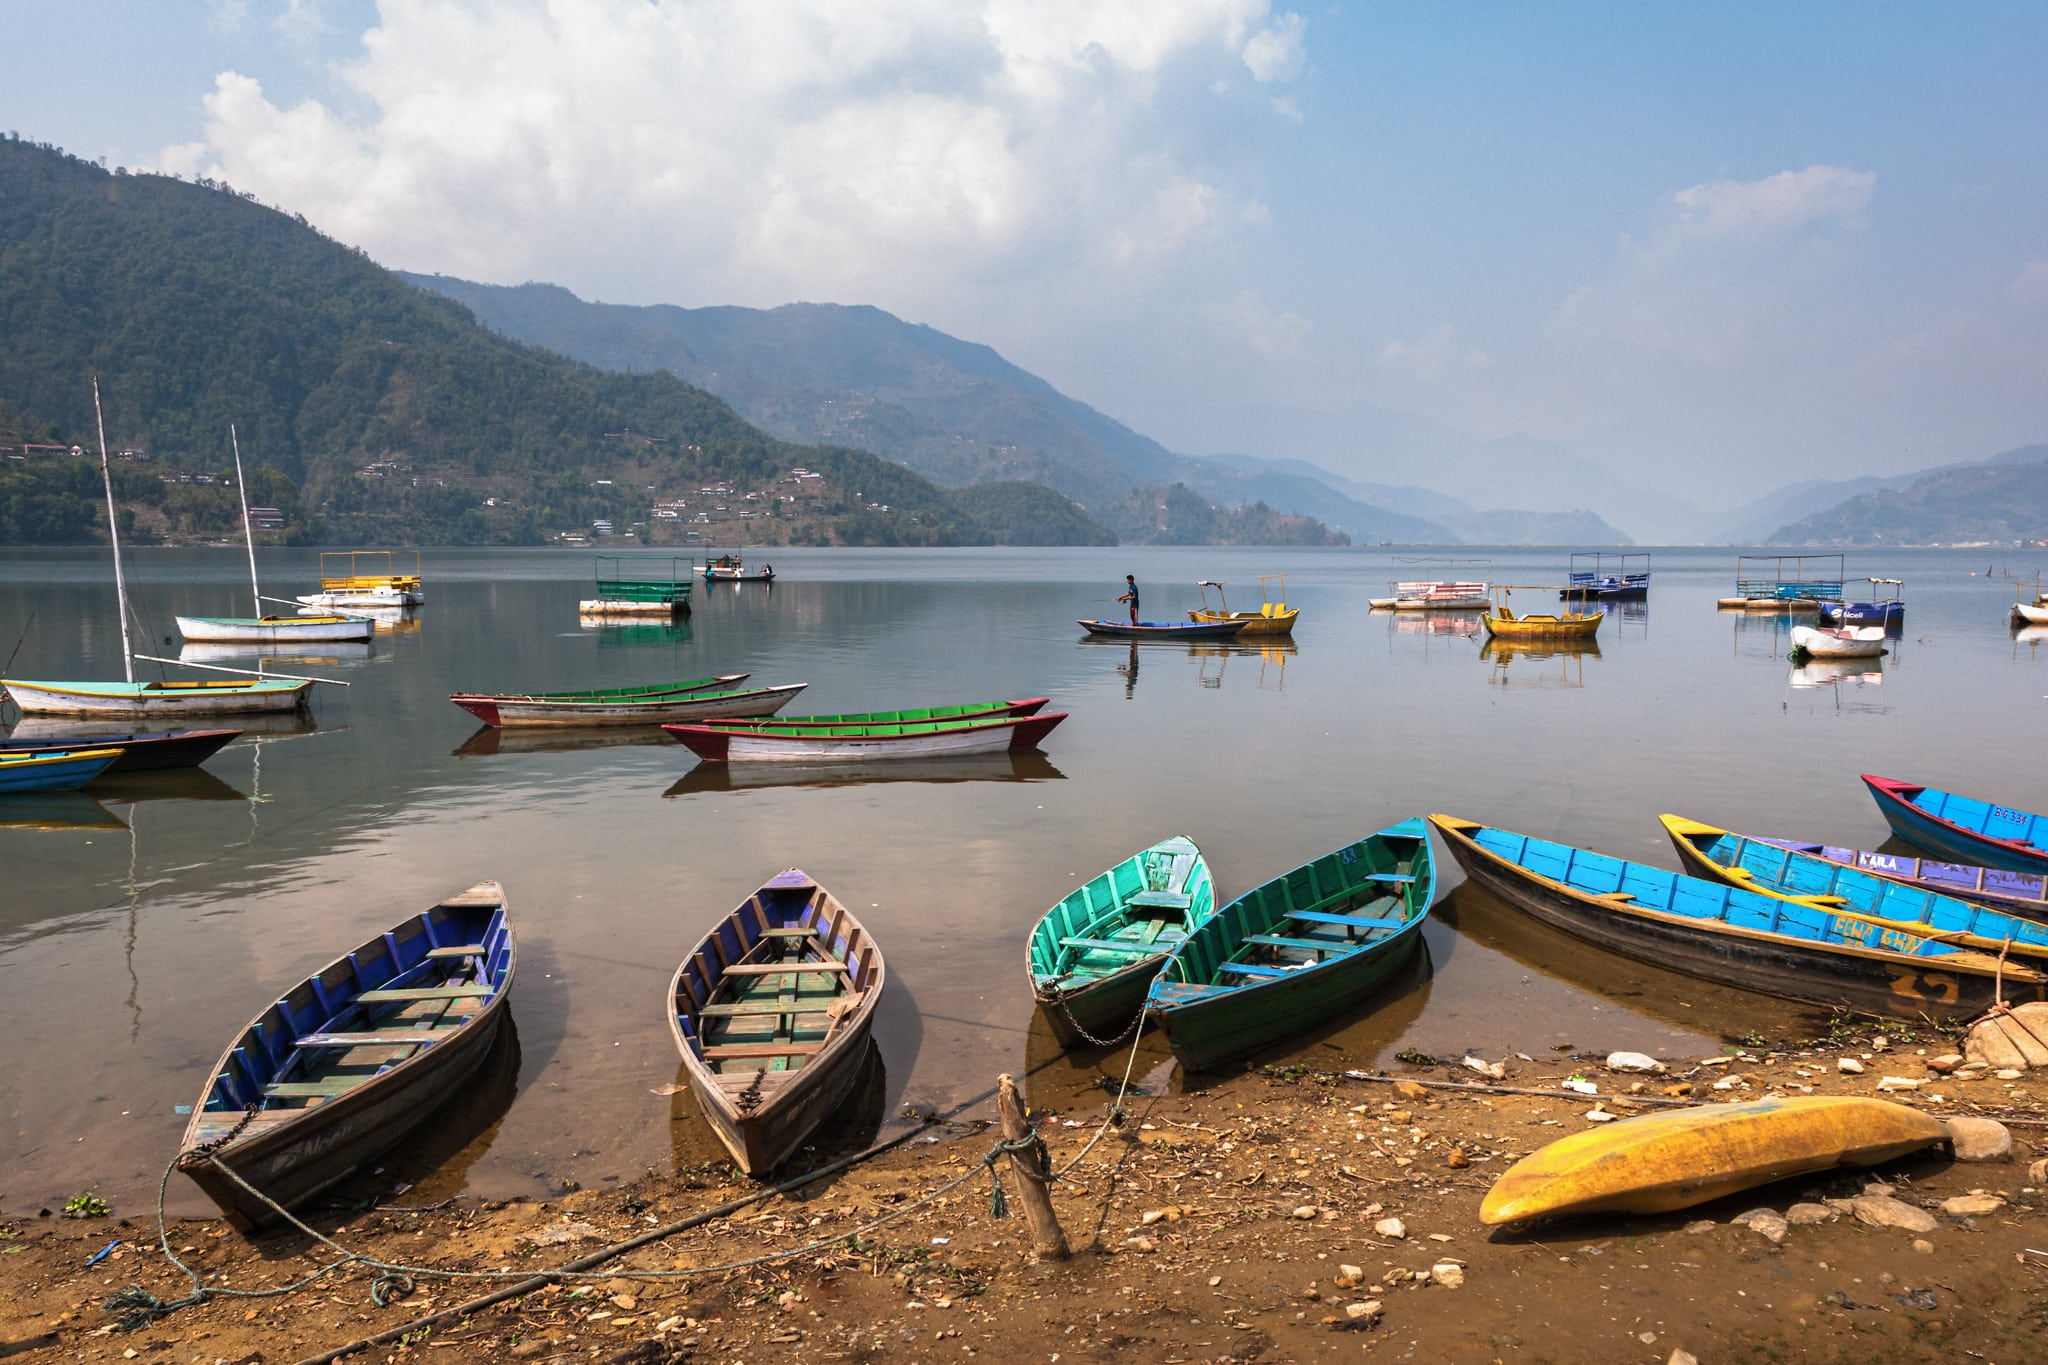 Canoes stand still at Phewa lake while a fisherman tries to catch a fish. Pokhara, Nepal.